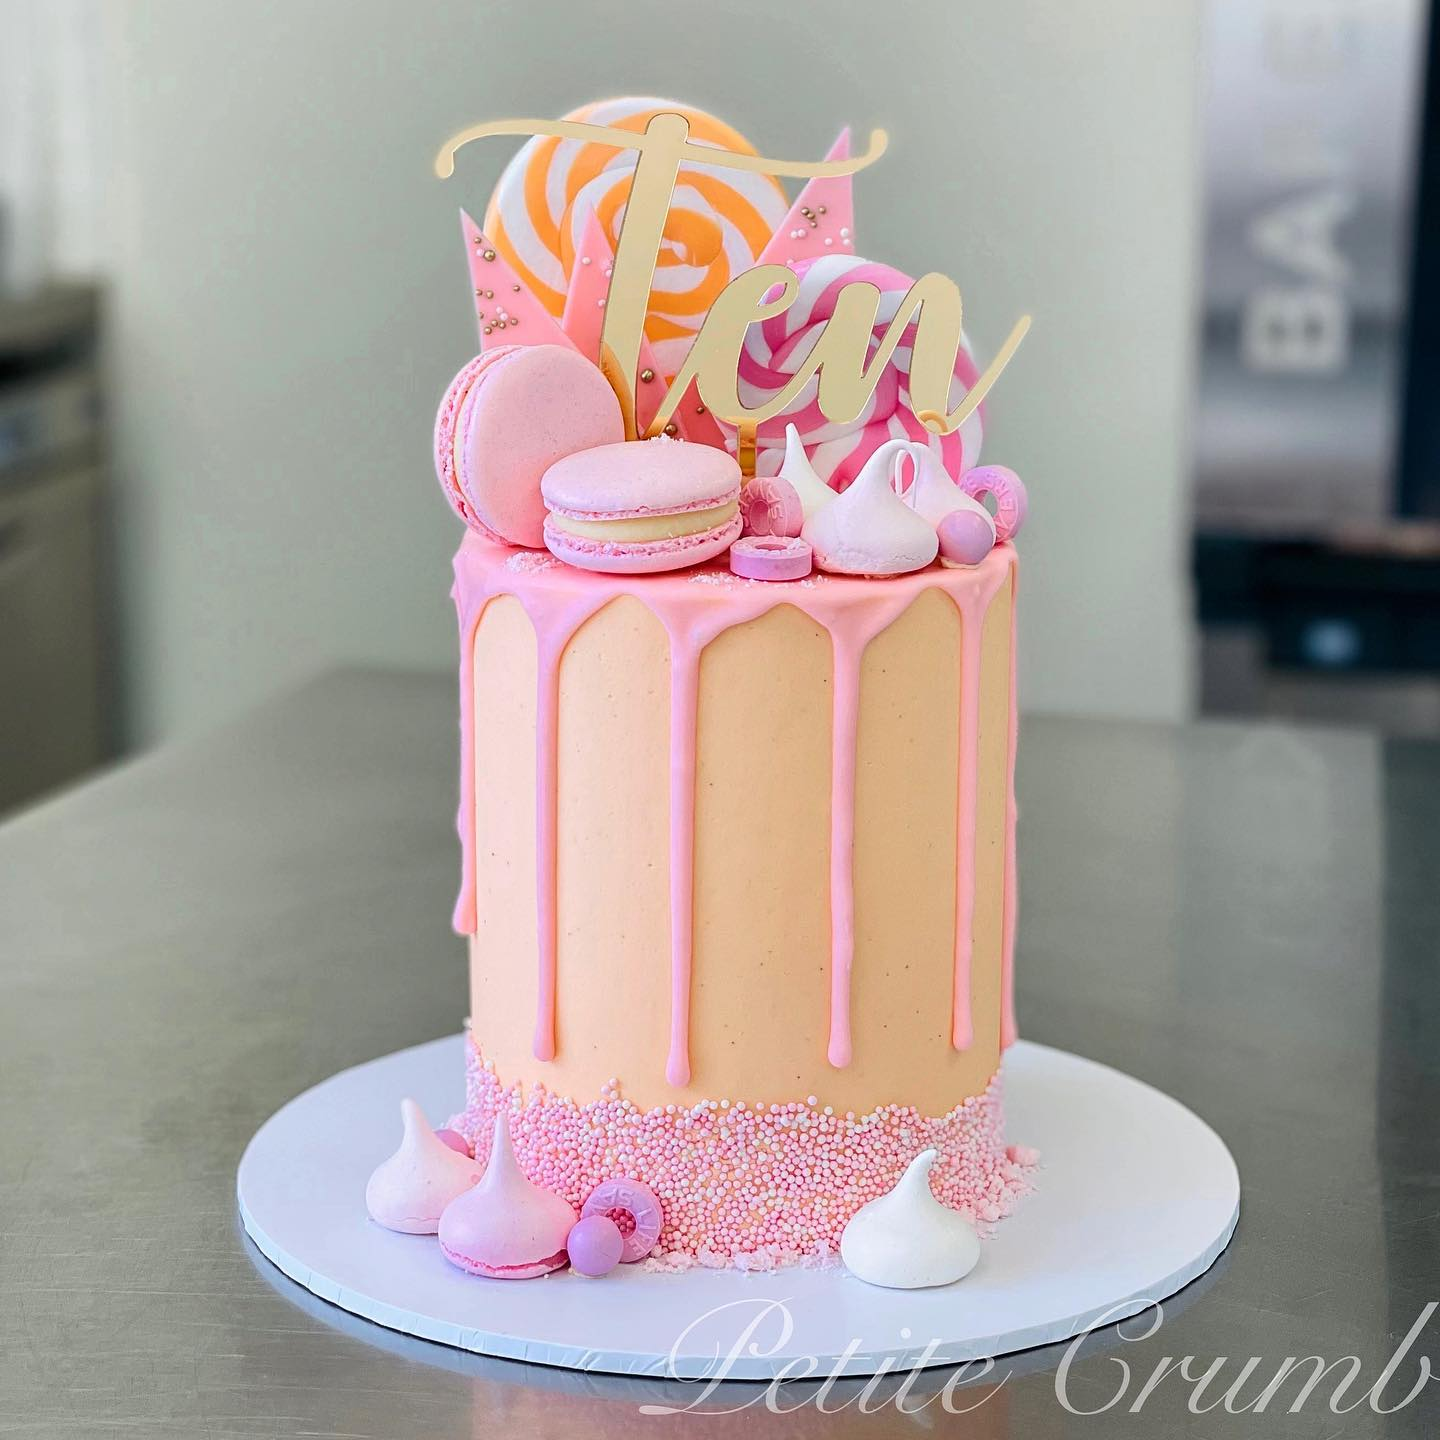 Peach and pink drip cake